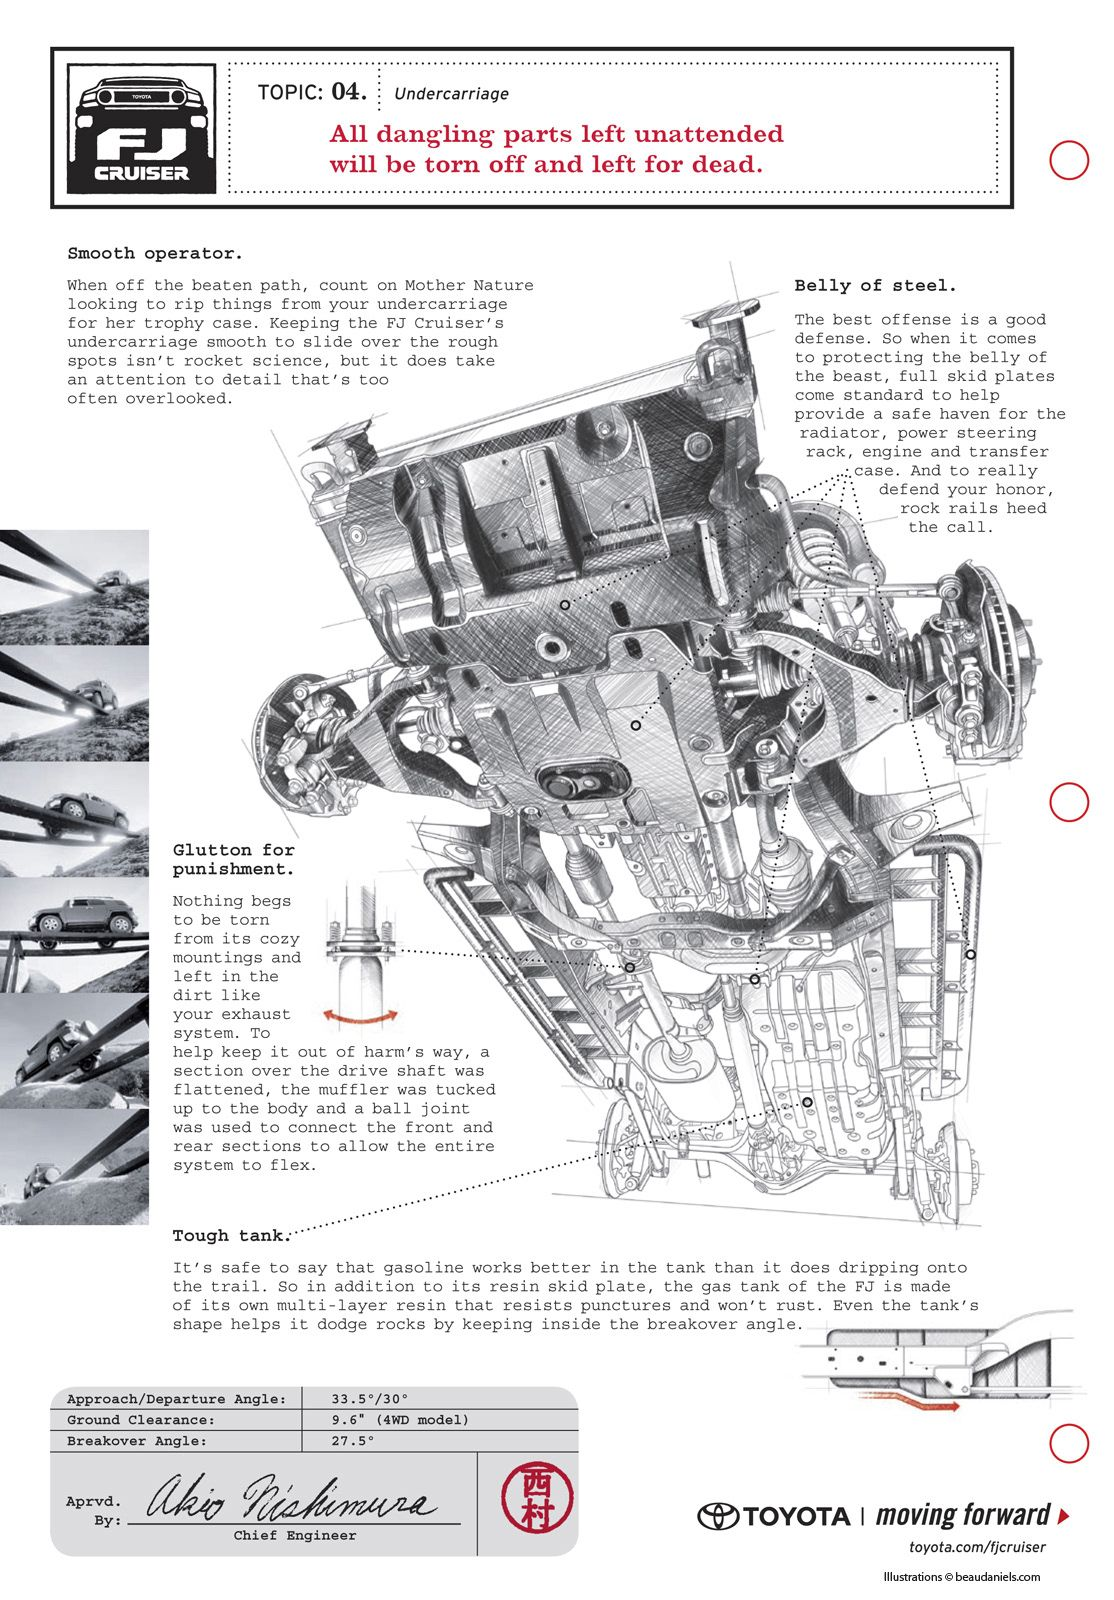 fj cruiser motor diagram wiring diagrams for 2011 toyota fj engine diagram [ 1114 x 1600 Pixel ]